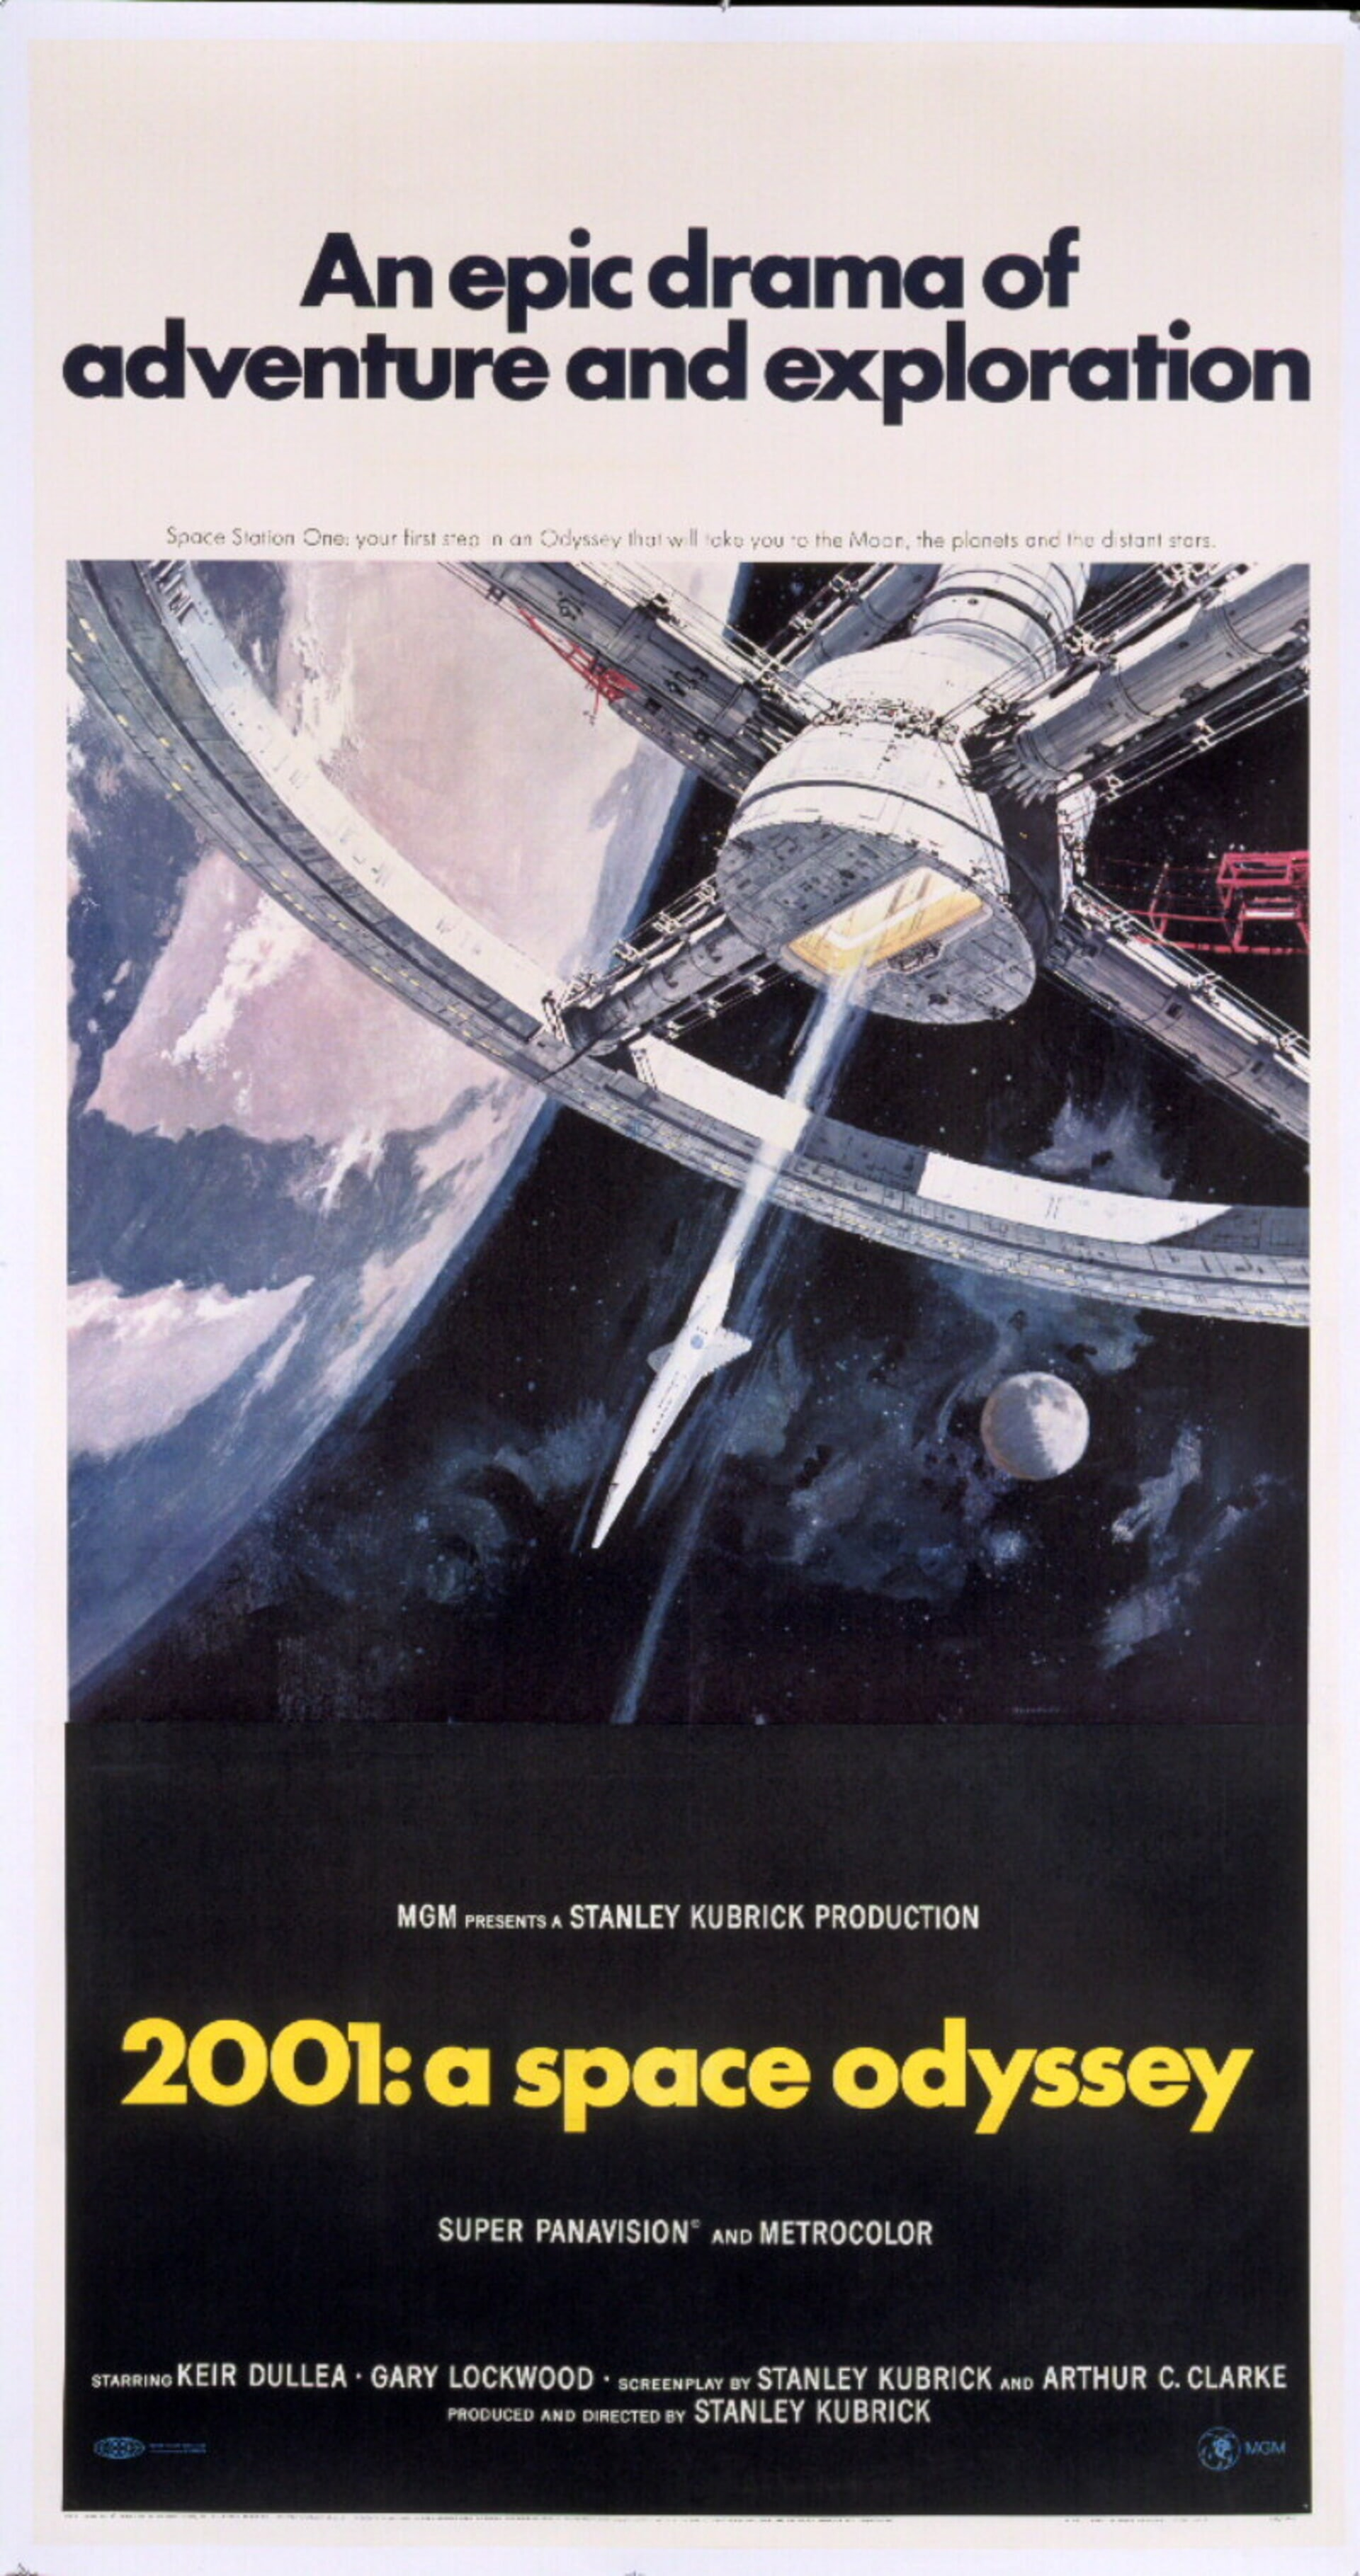 2001: A Space Odyssey - Poster 10